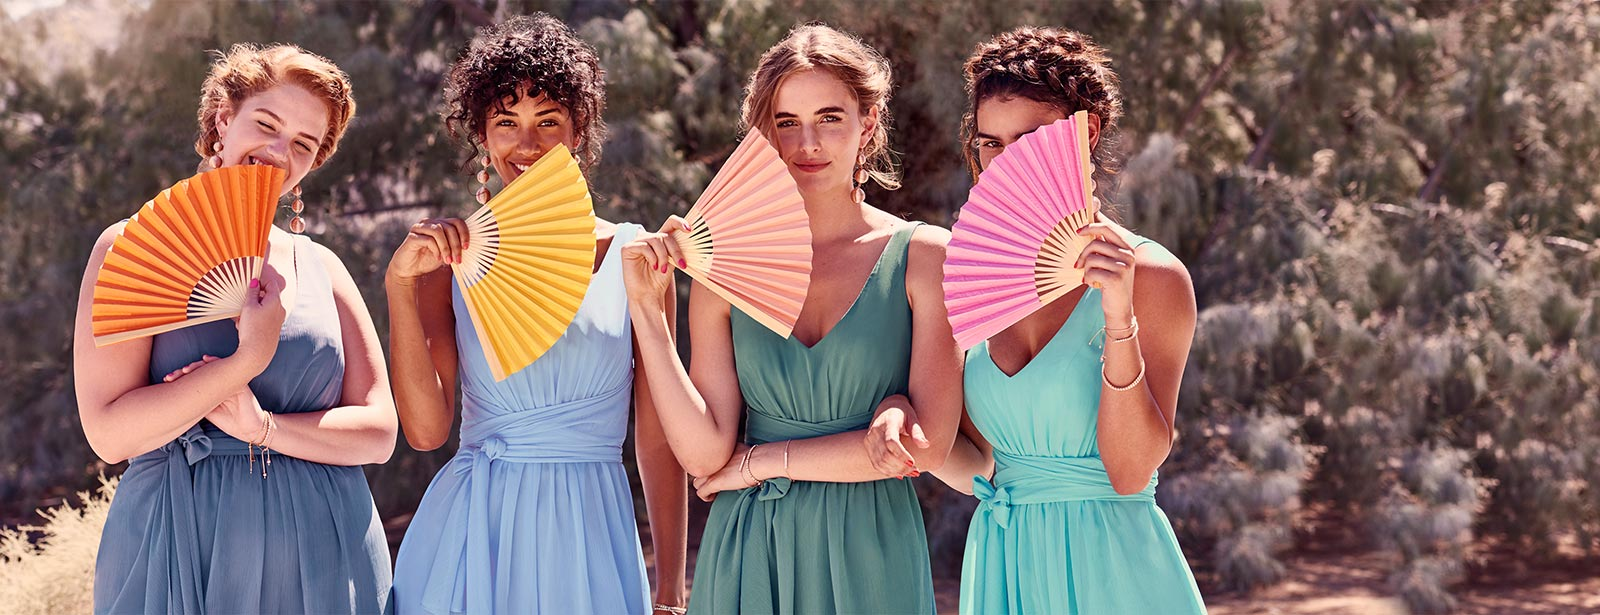 Spring wedding colors ideas inspiration davids bridal four bridesmaids holding colorful fans four bridesmaids holding colorful fans spring wedding color ideas junglespirit Gallery